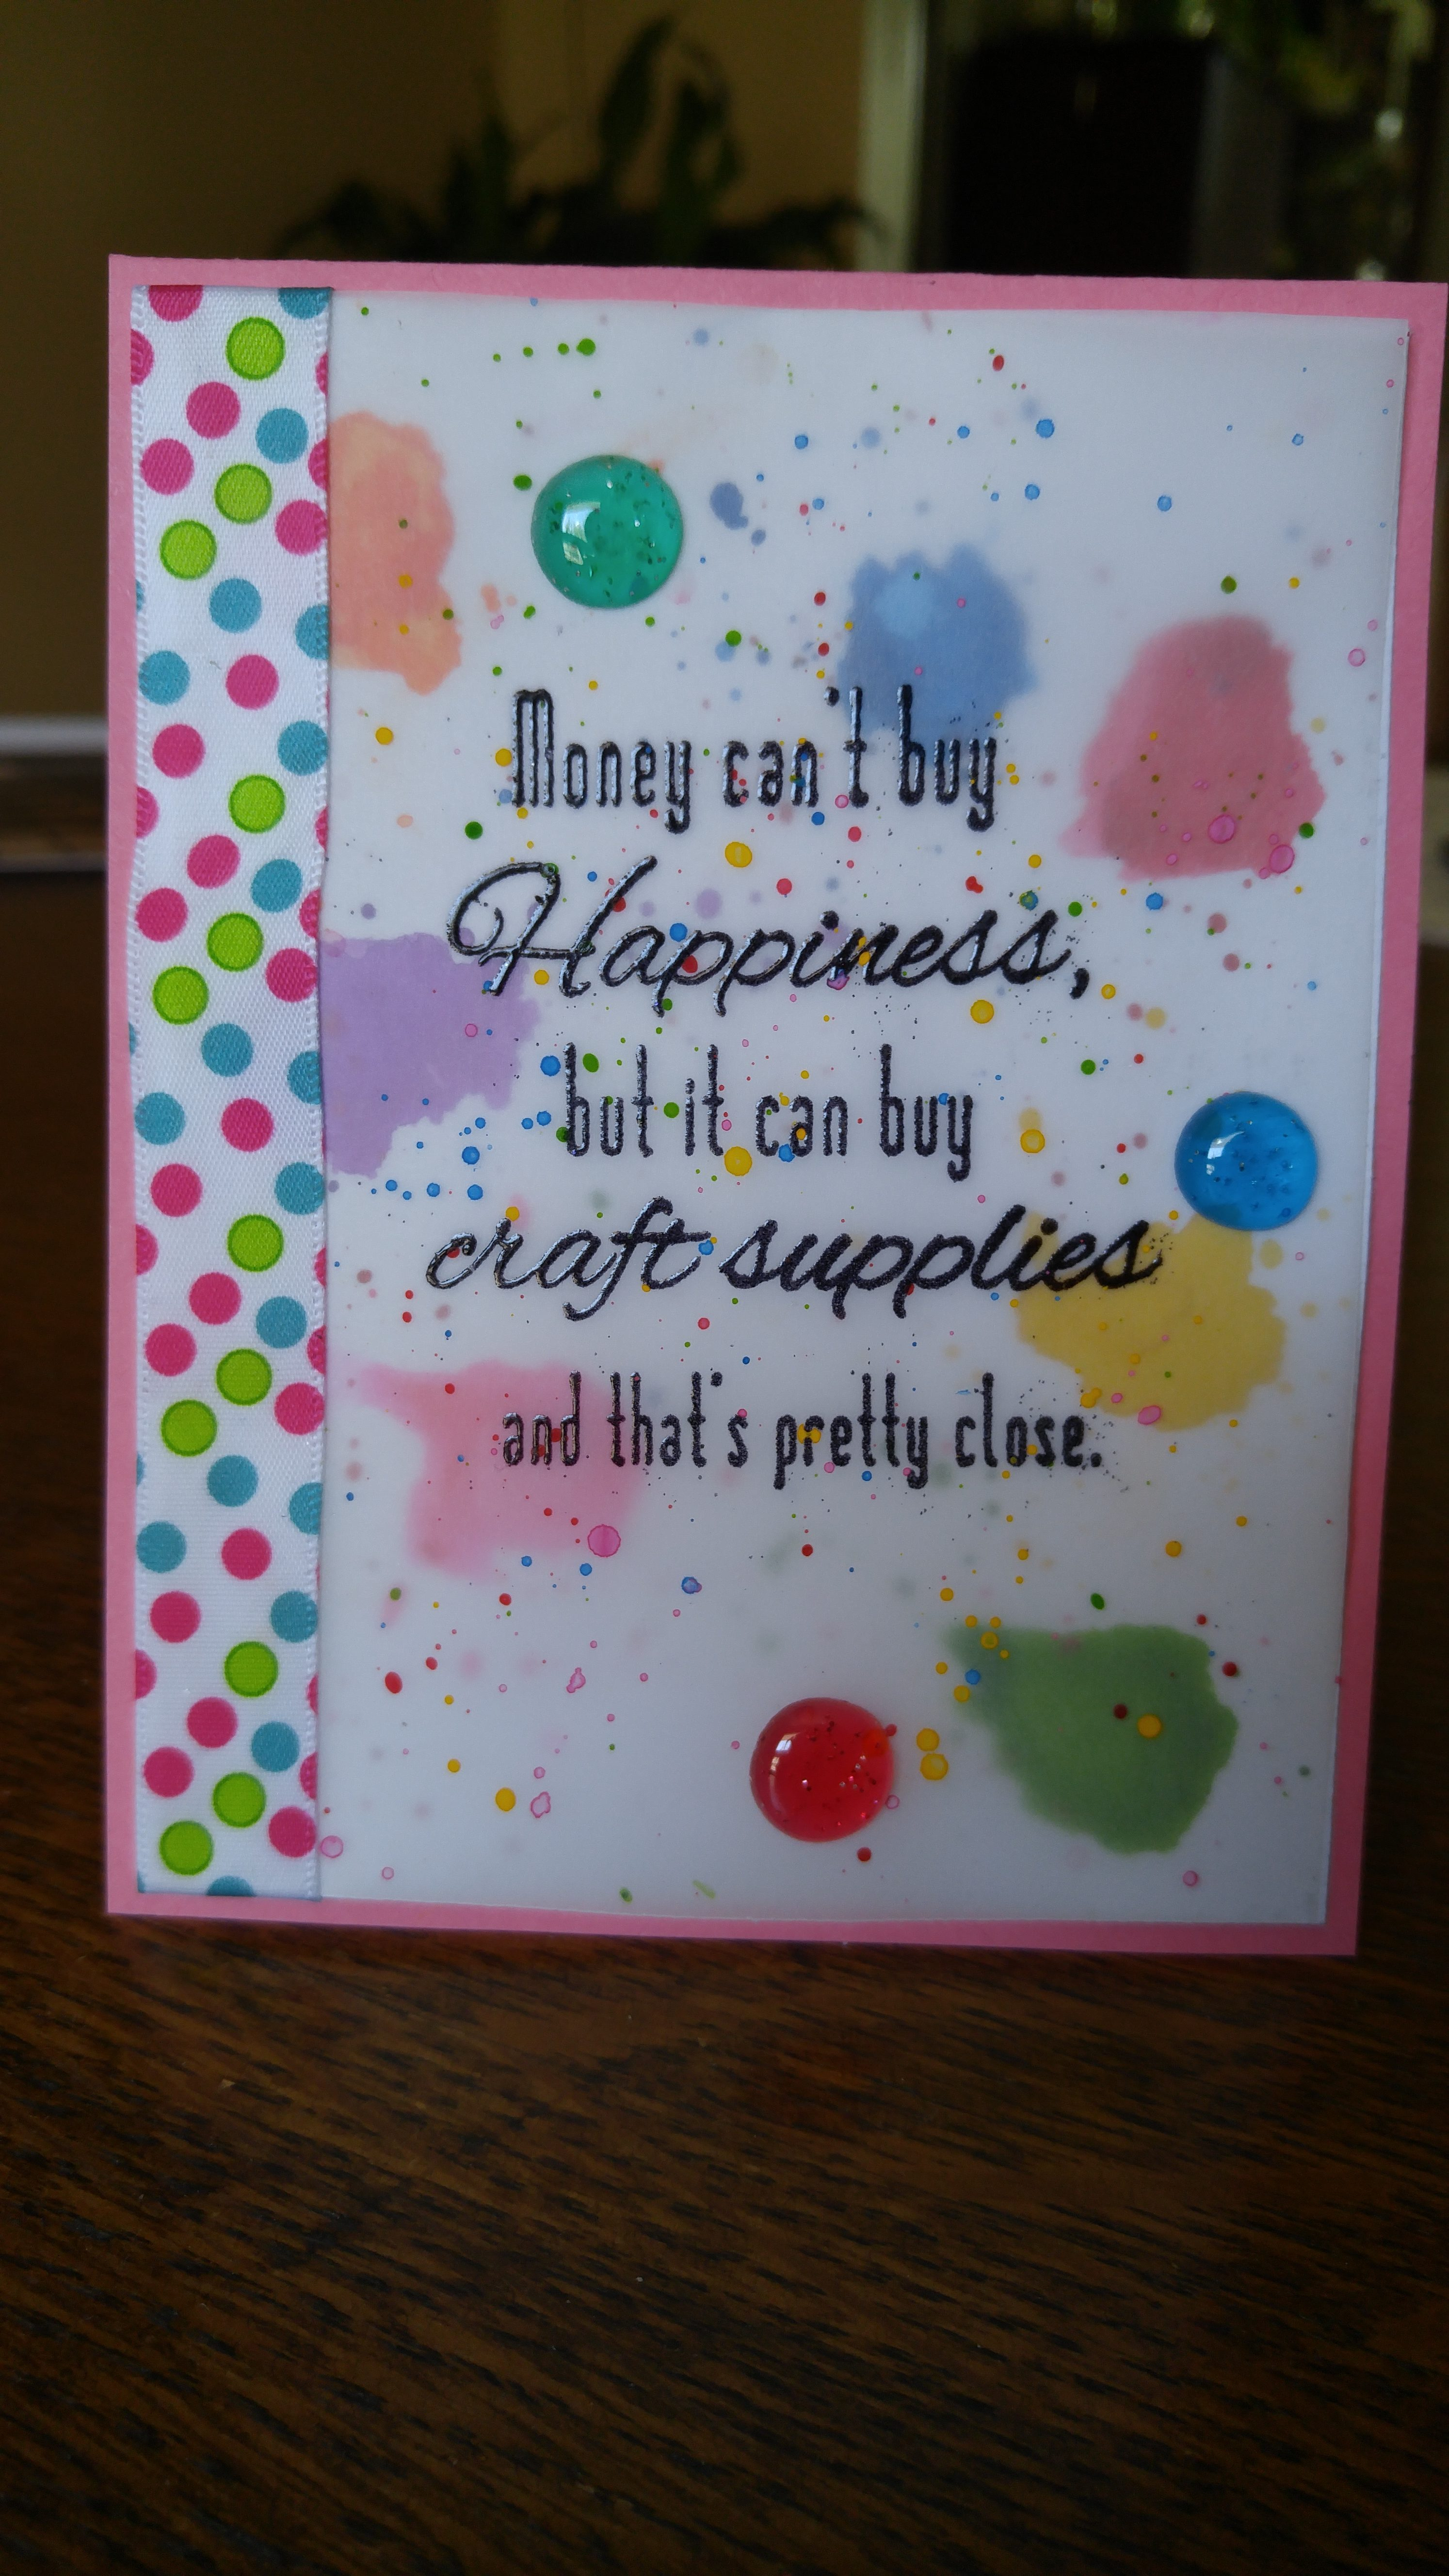 BELLARIFIC FRIDAY CHALLENGE (money can't buy happiness BIG WORDS STAMP)- DOTS AND BUTTONS AND SEQUINS on cards